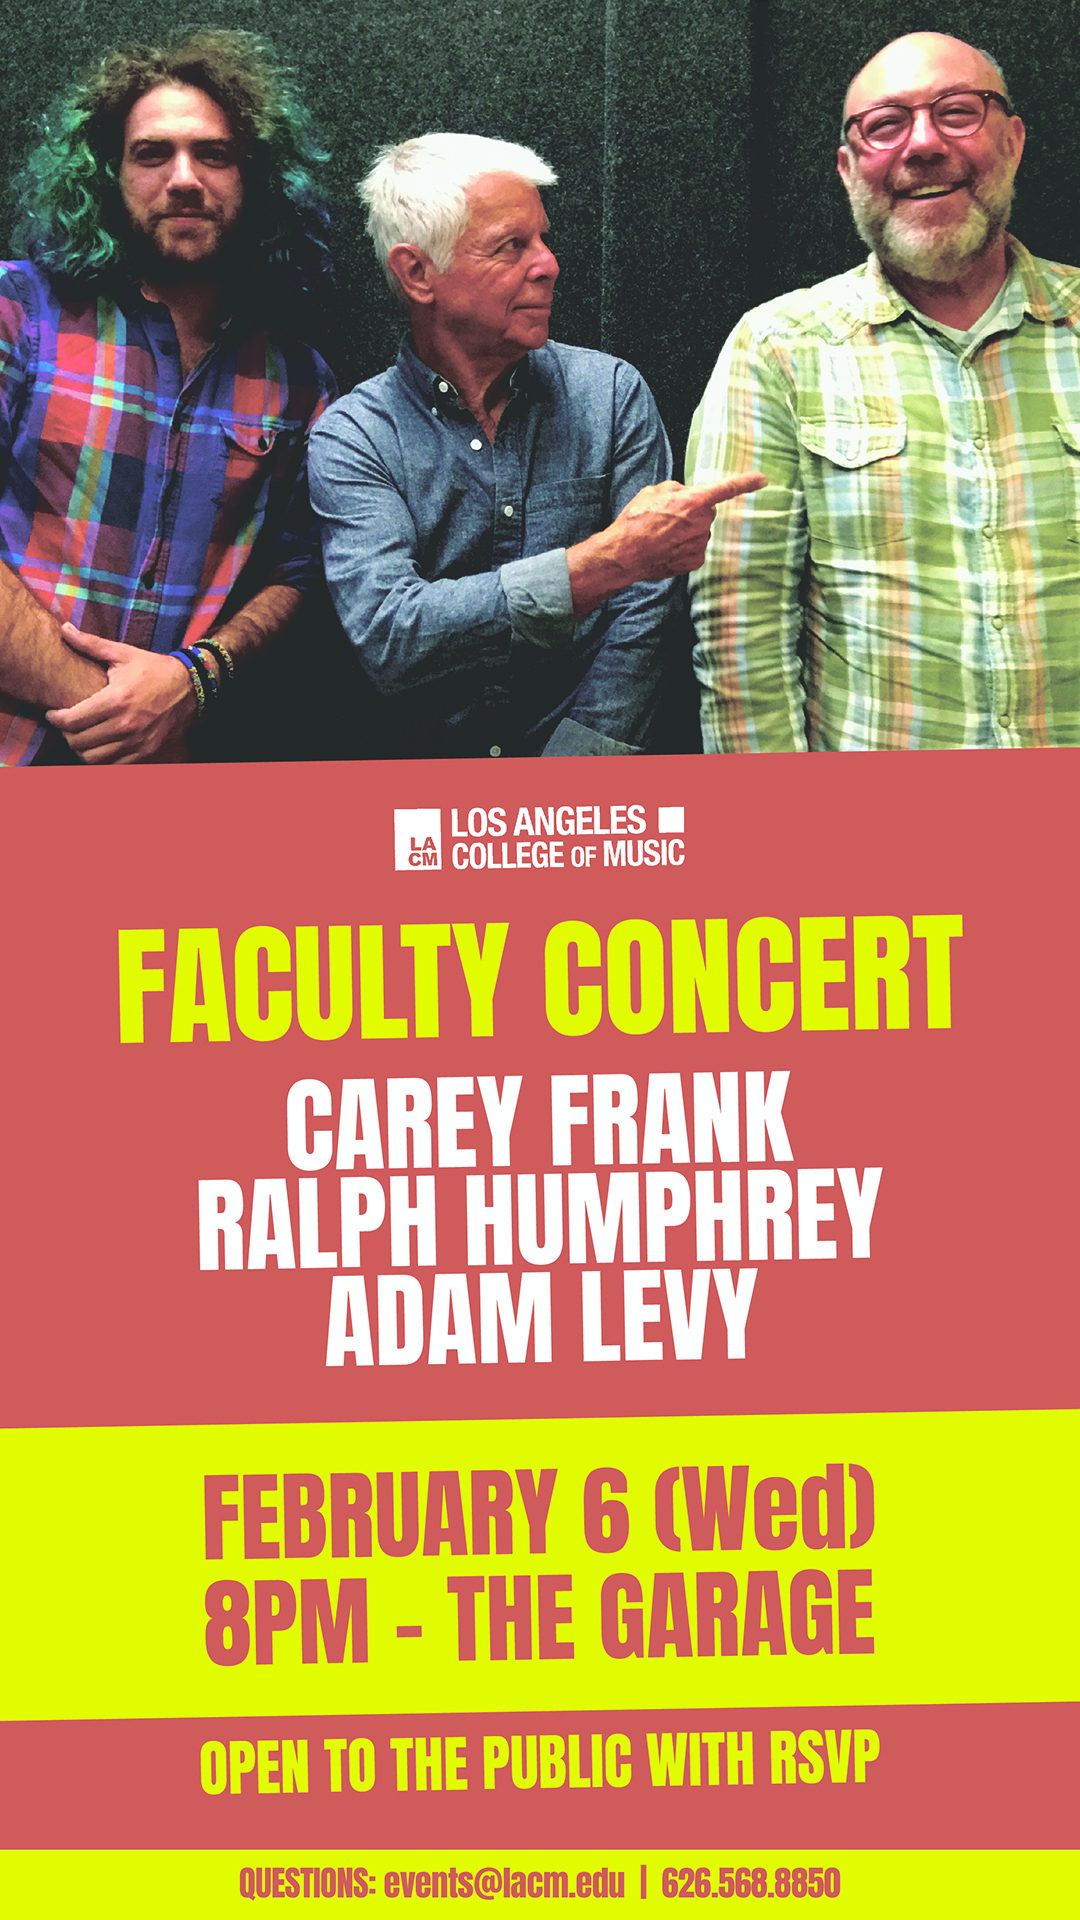 LACM Faculty Concert feat. Carey Frank, Ralph Humphrey and Adam Levy